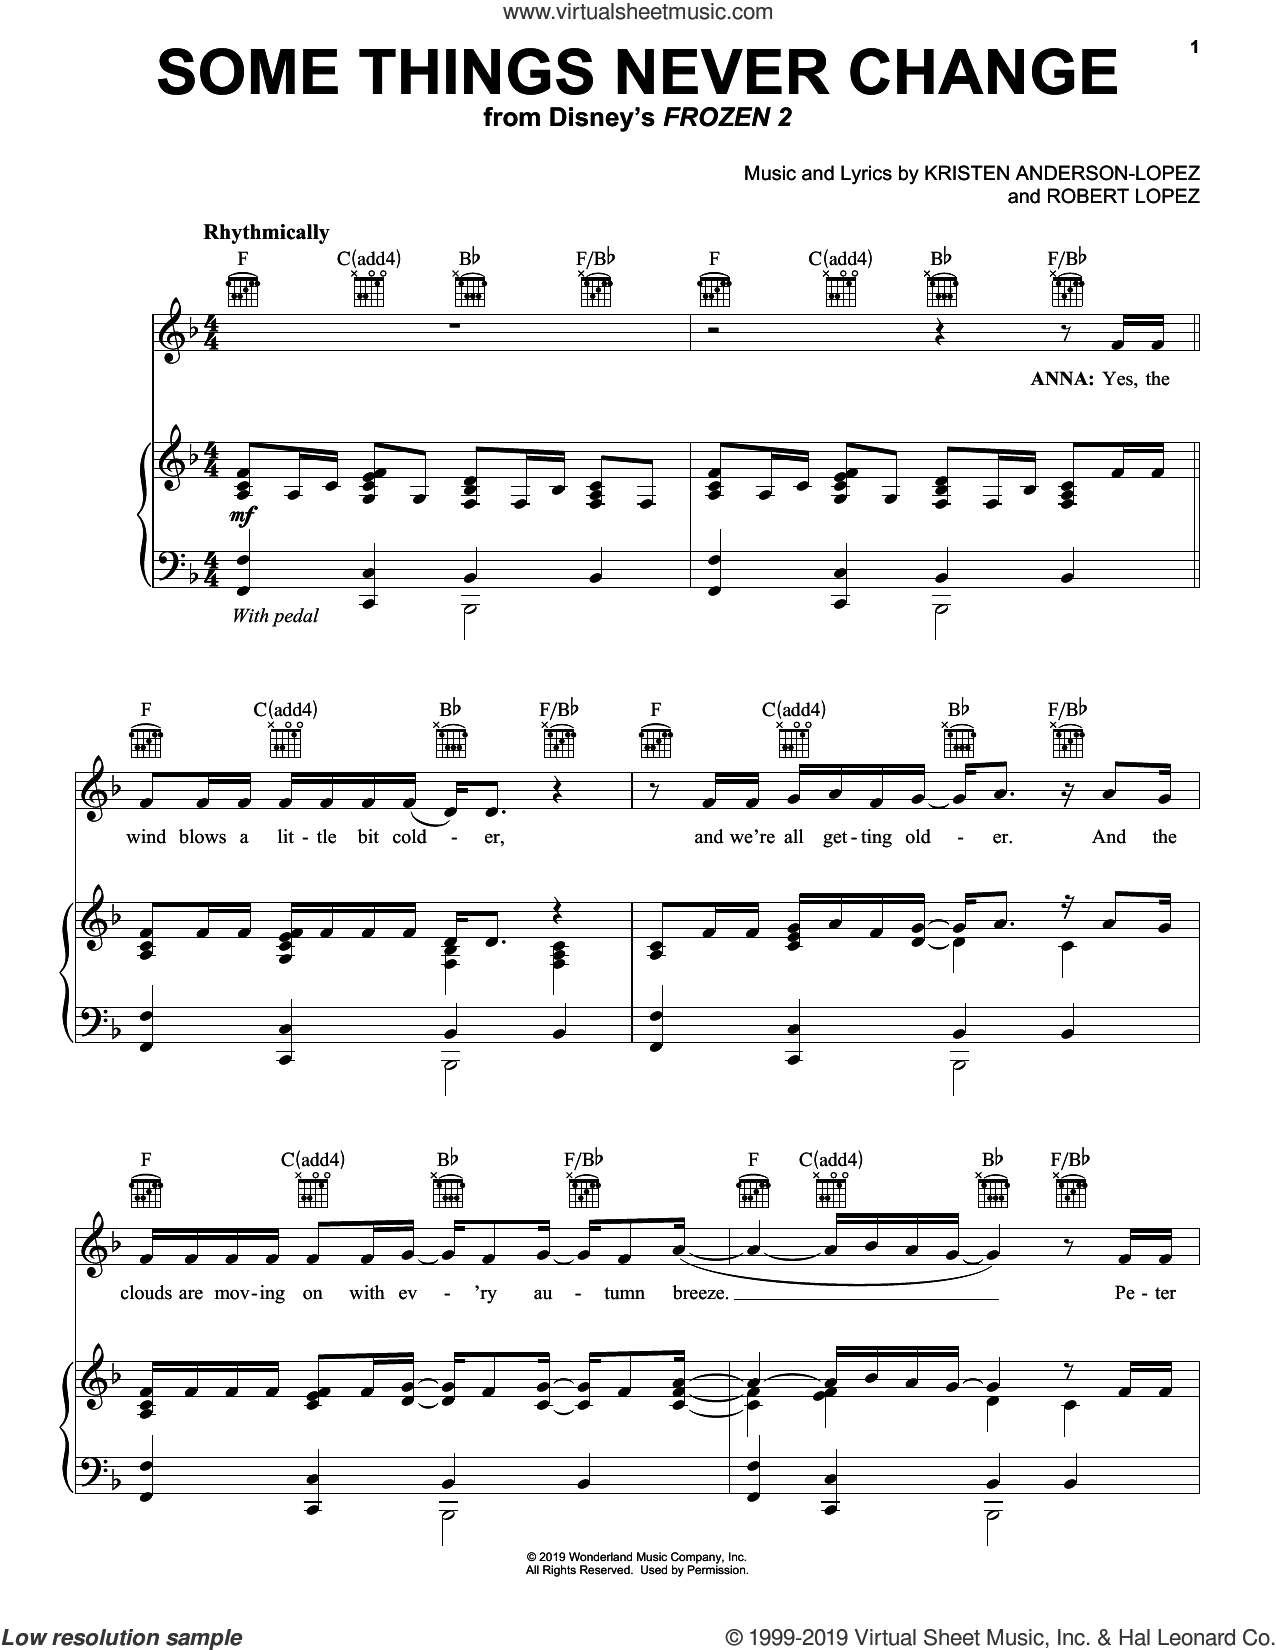 Some Things Never Change (from Disney's Frozen 2) sheet music for voice, piano or guitar by Kristen Bell, Idina Menzel and Cast of Frozen 2, Kristen Anderson-Lopez and Robert Lopez, intermediate skill level